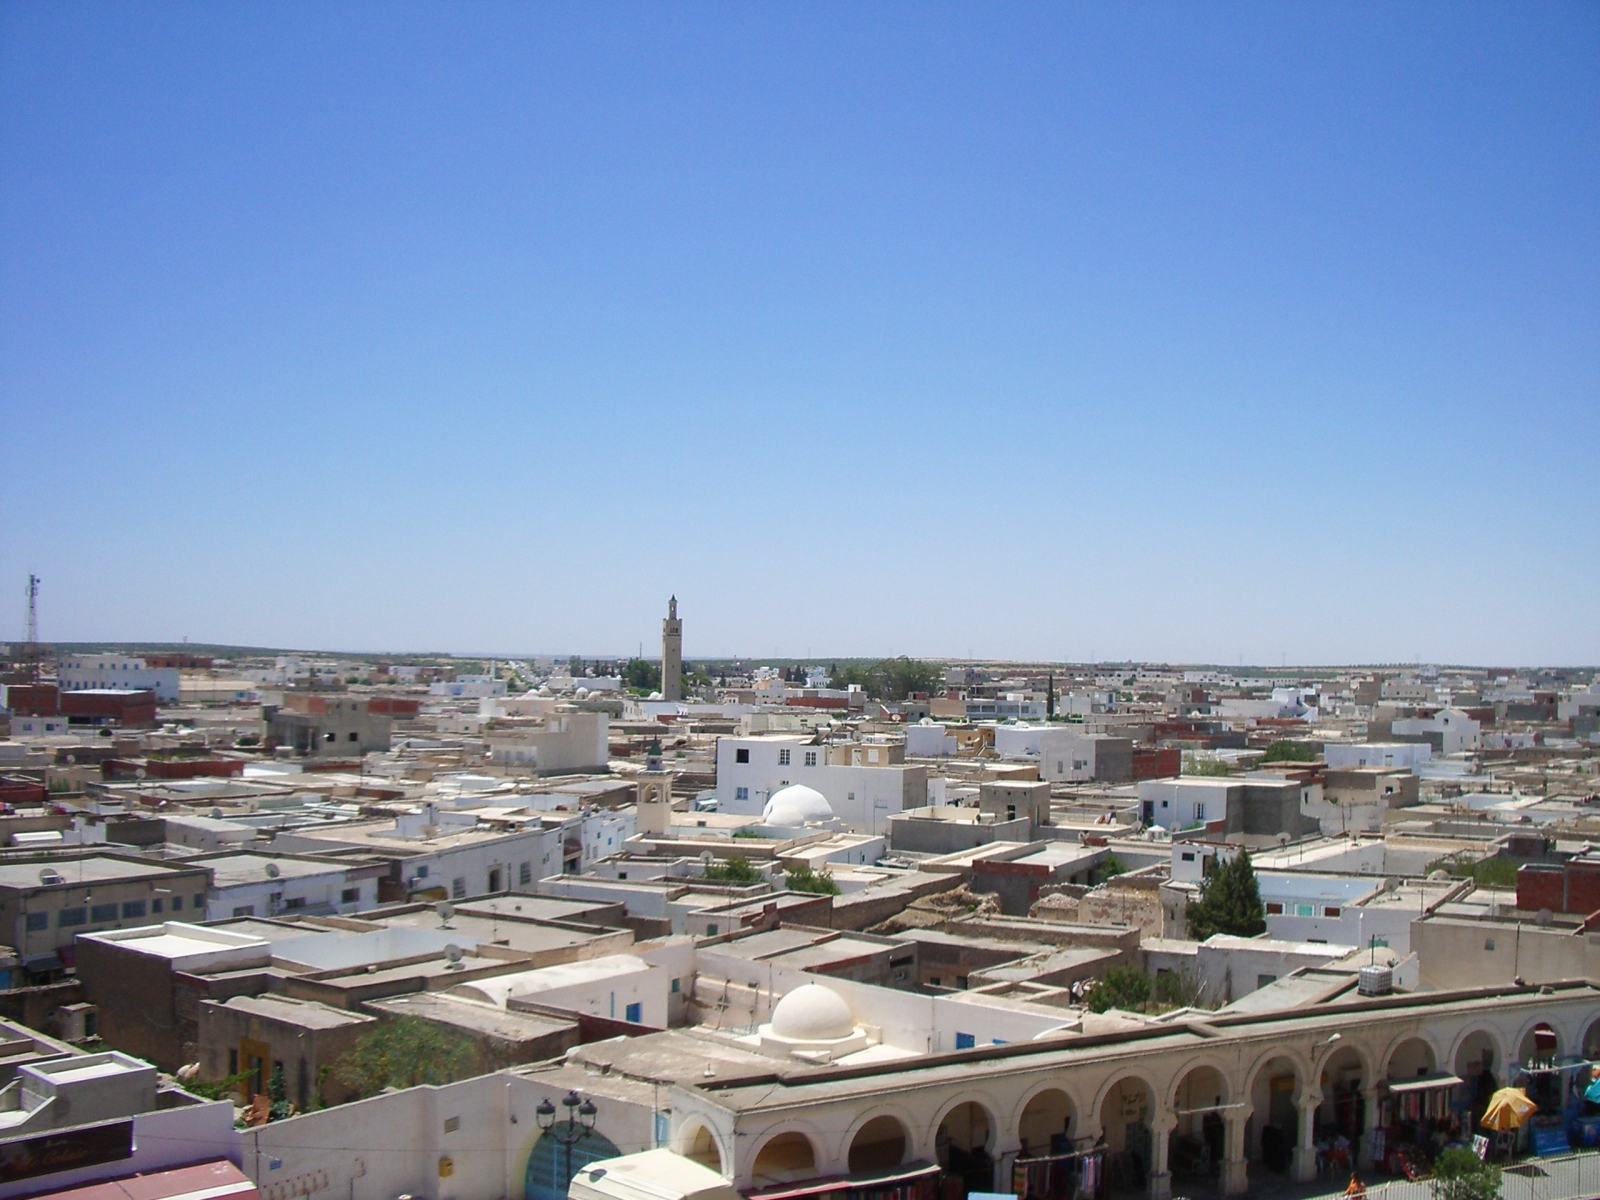 El Djem, Tunisia, City skyline